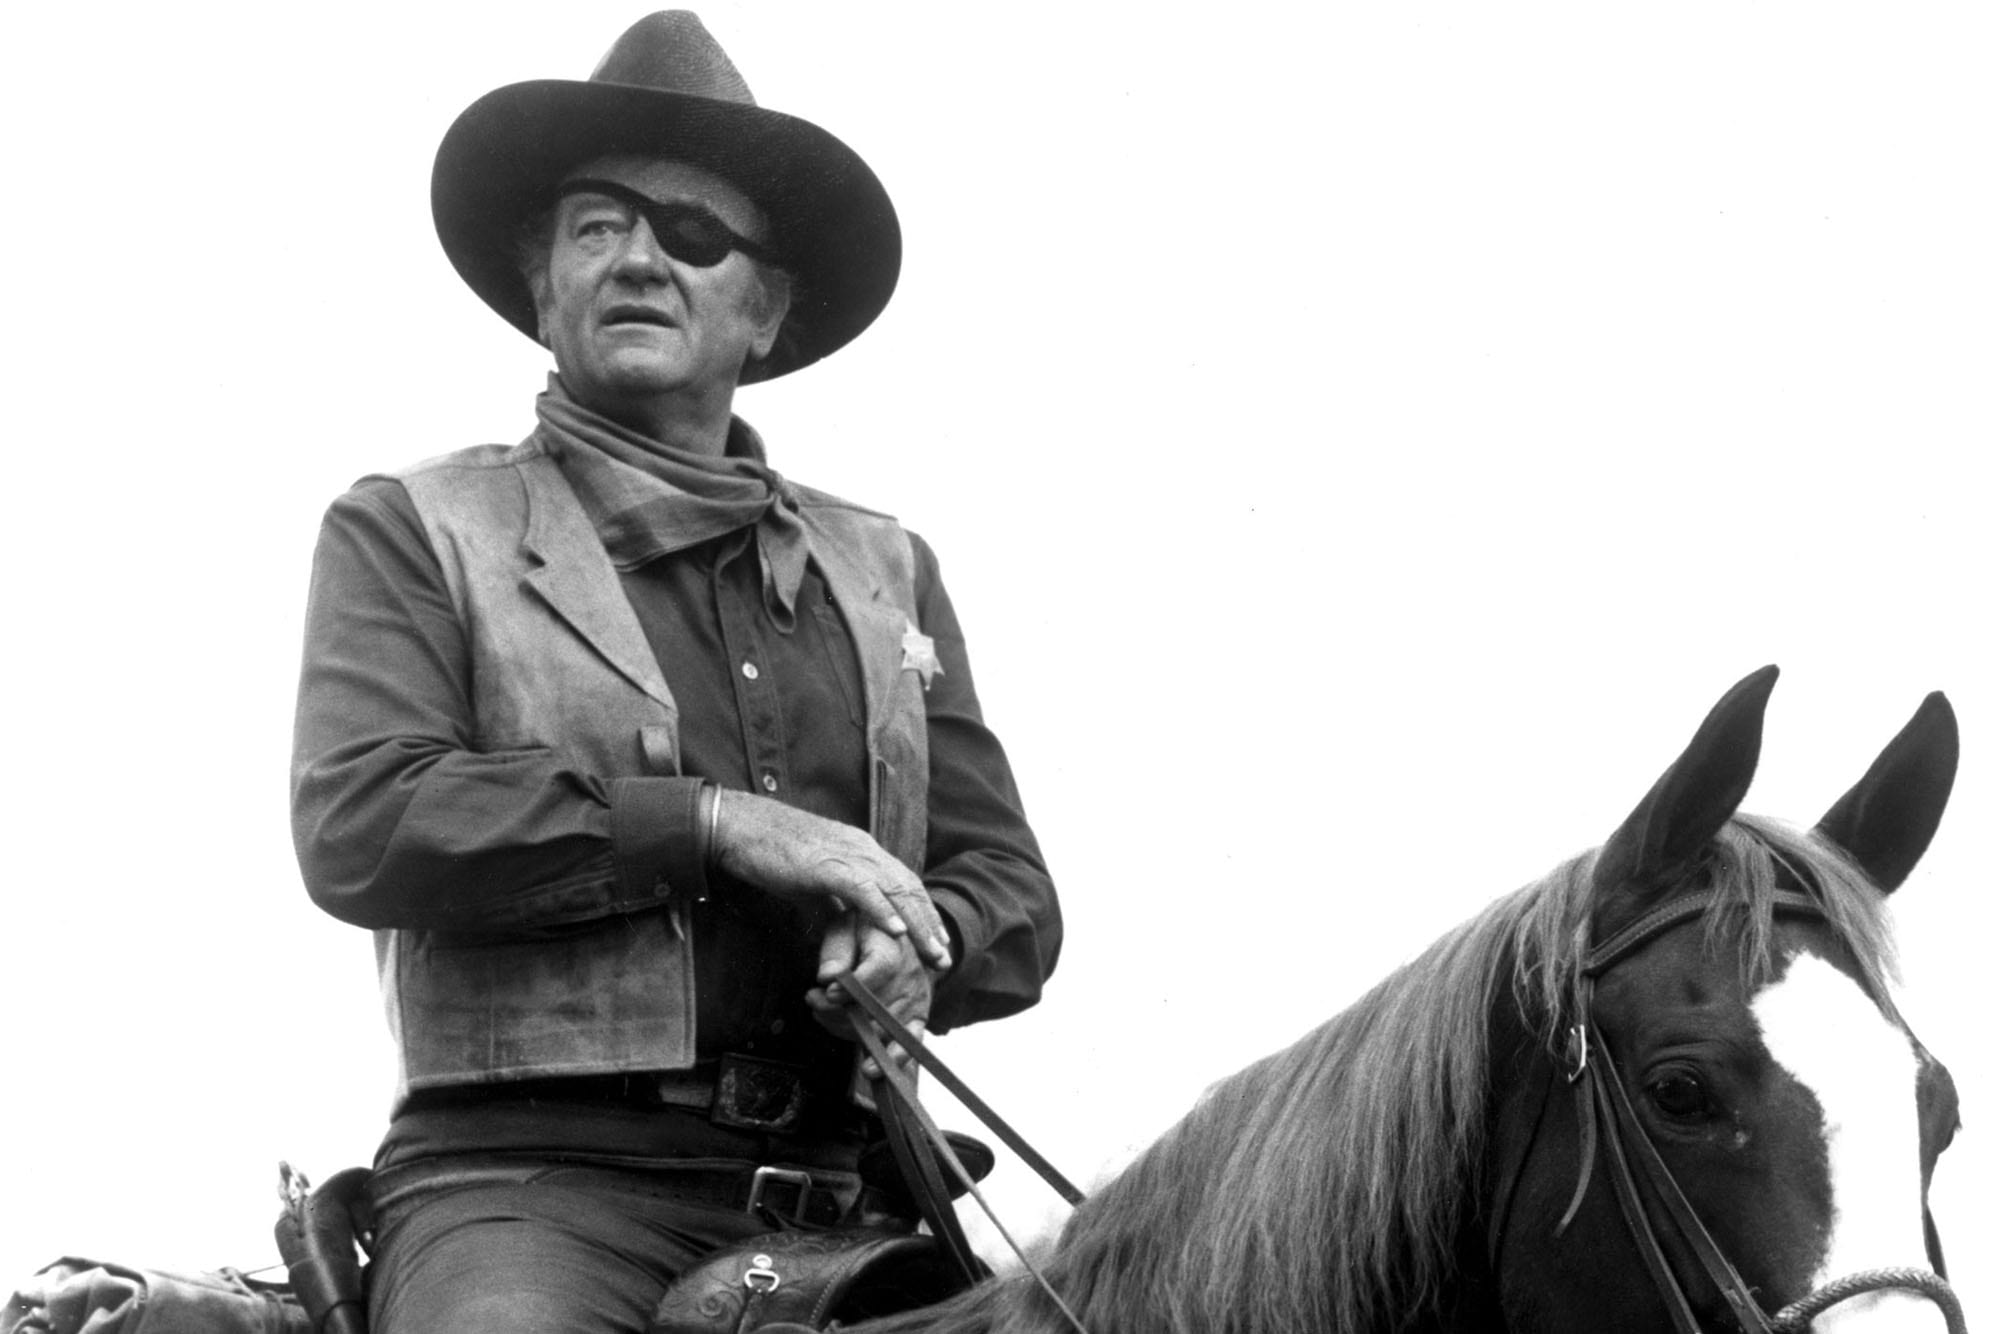 5 Things Men Can Learn About Being a Man From John Wayne